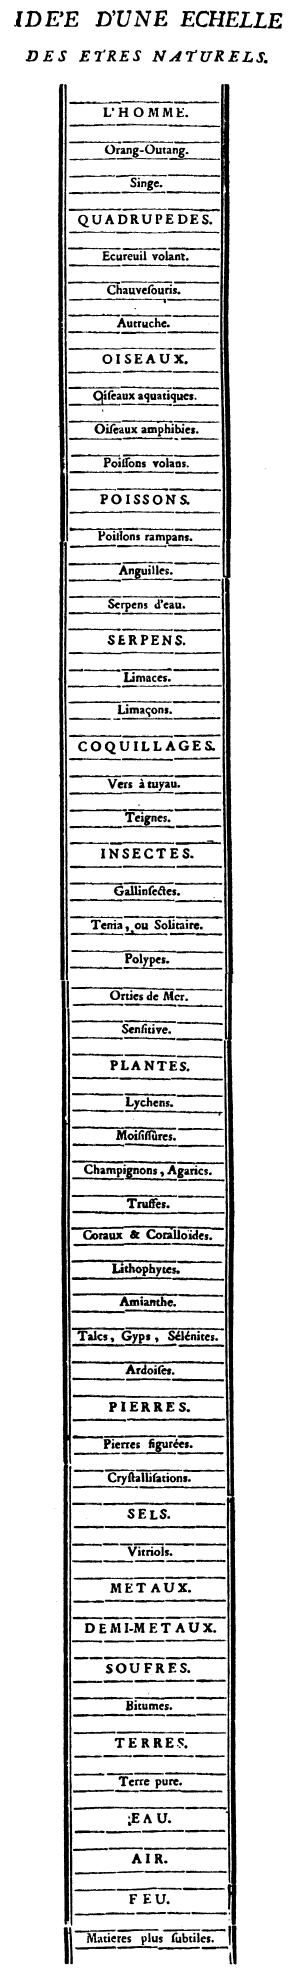 Chain of being from Traite d'insectologie, 1745 BonnetChain.jpg